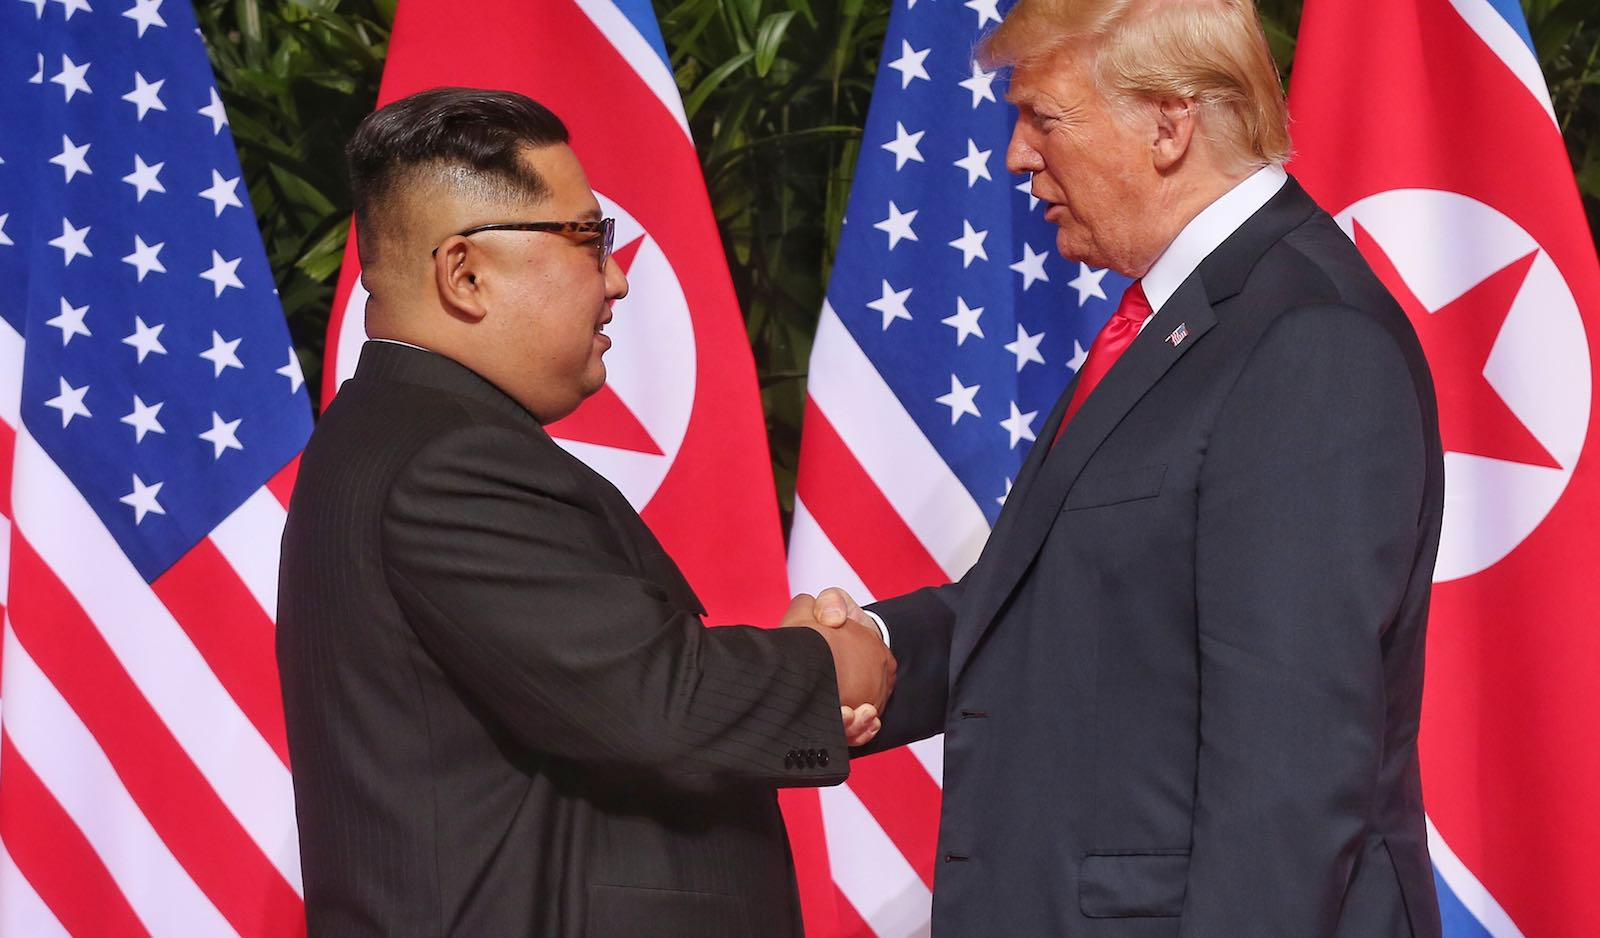 North Korean leader Kim Jong-un shakes hands with US President Donald Trump on Tuesday in Singapore (Photo: Kevin Lim via Getty)